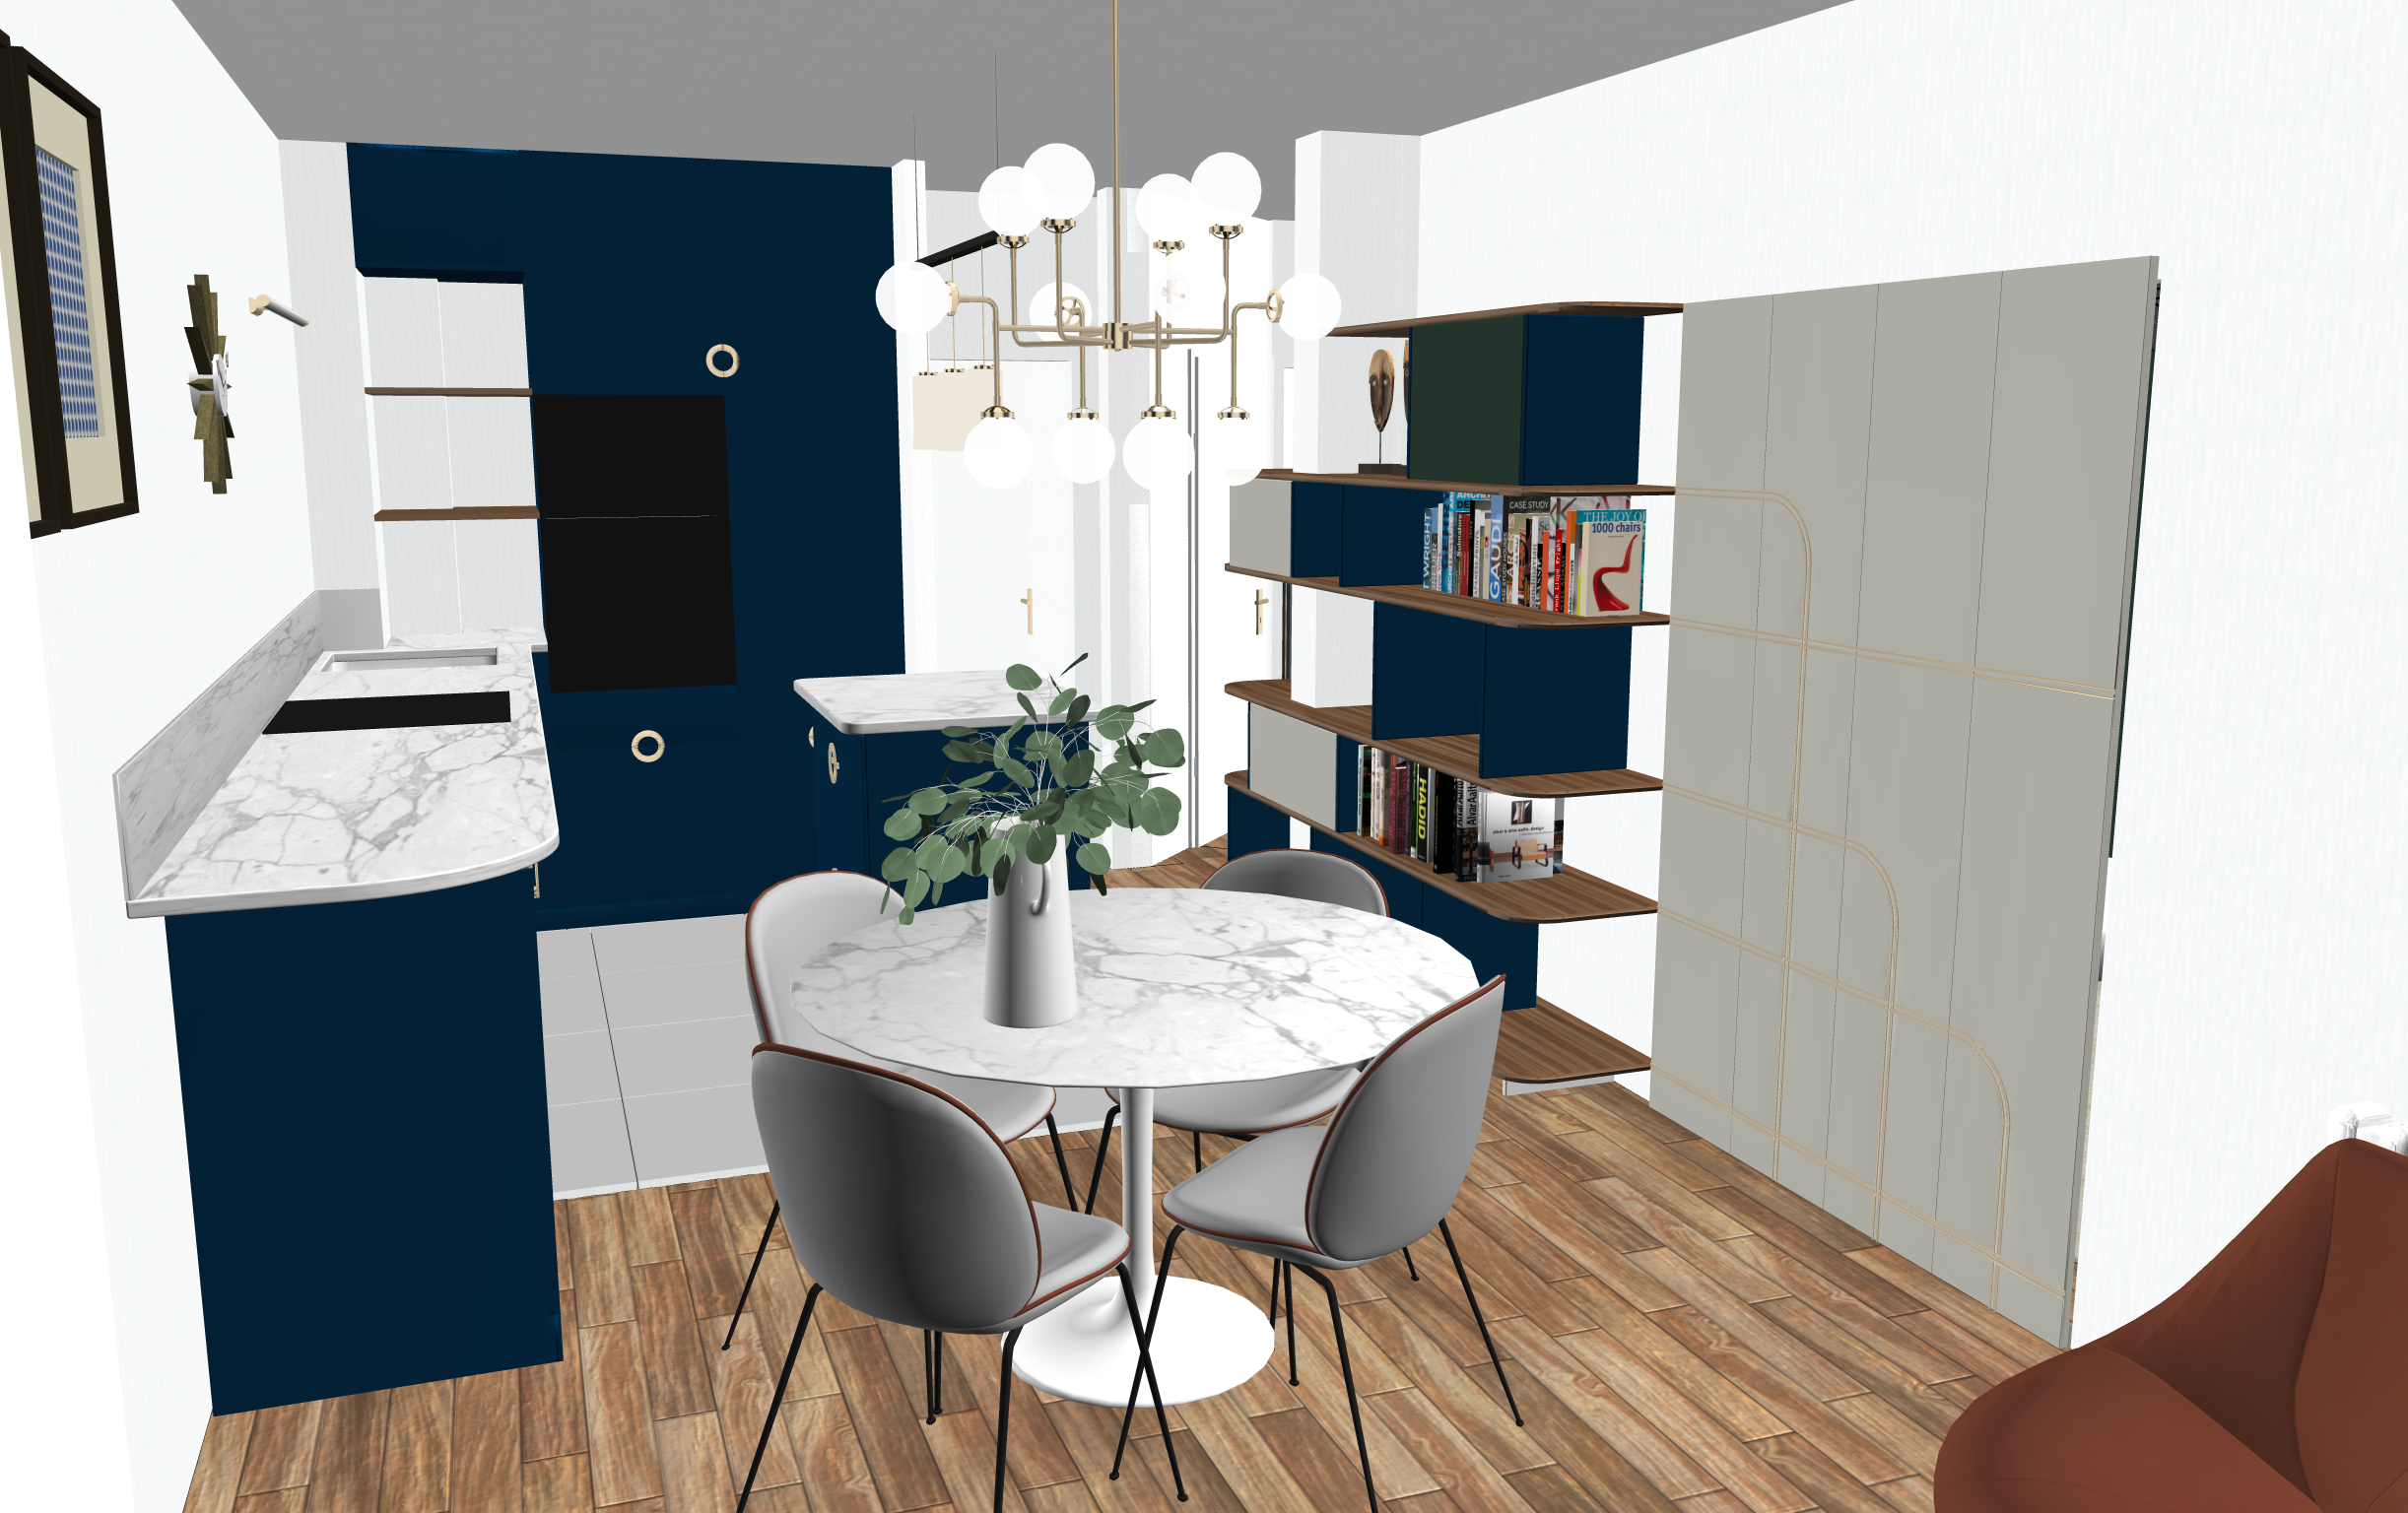 maison_bou_2019_neuilly_3d_3.png